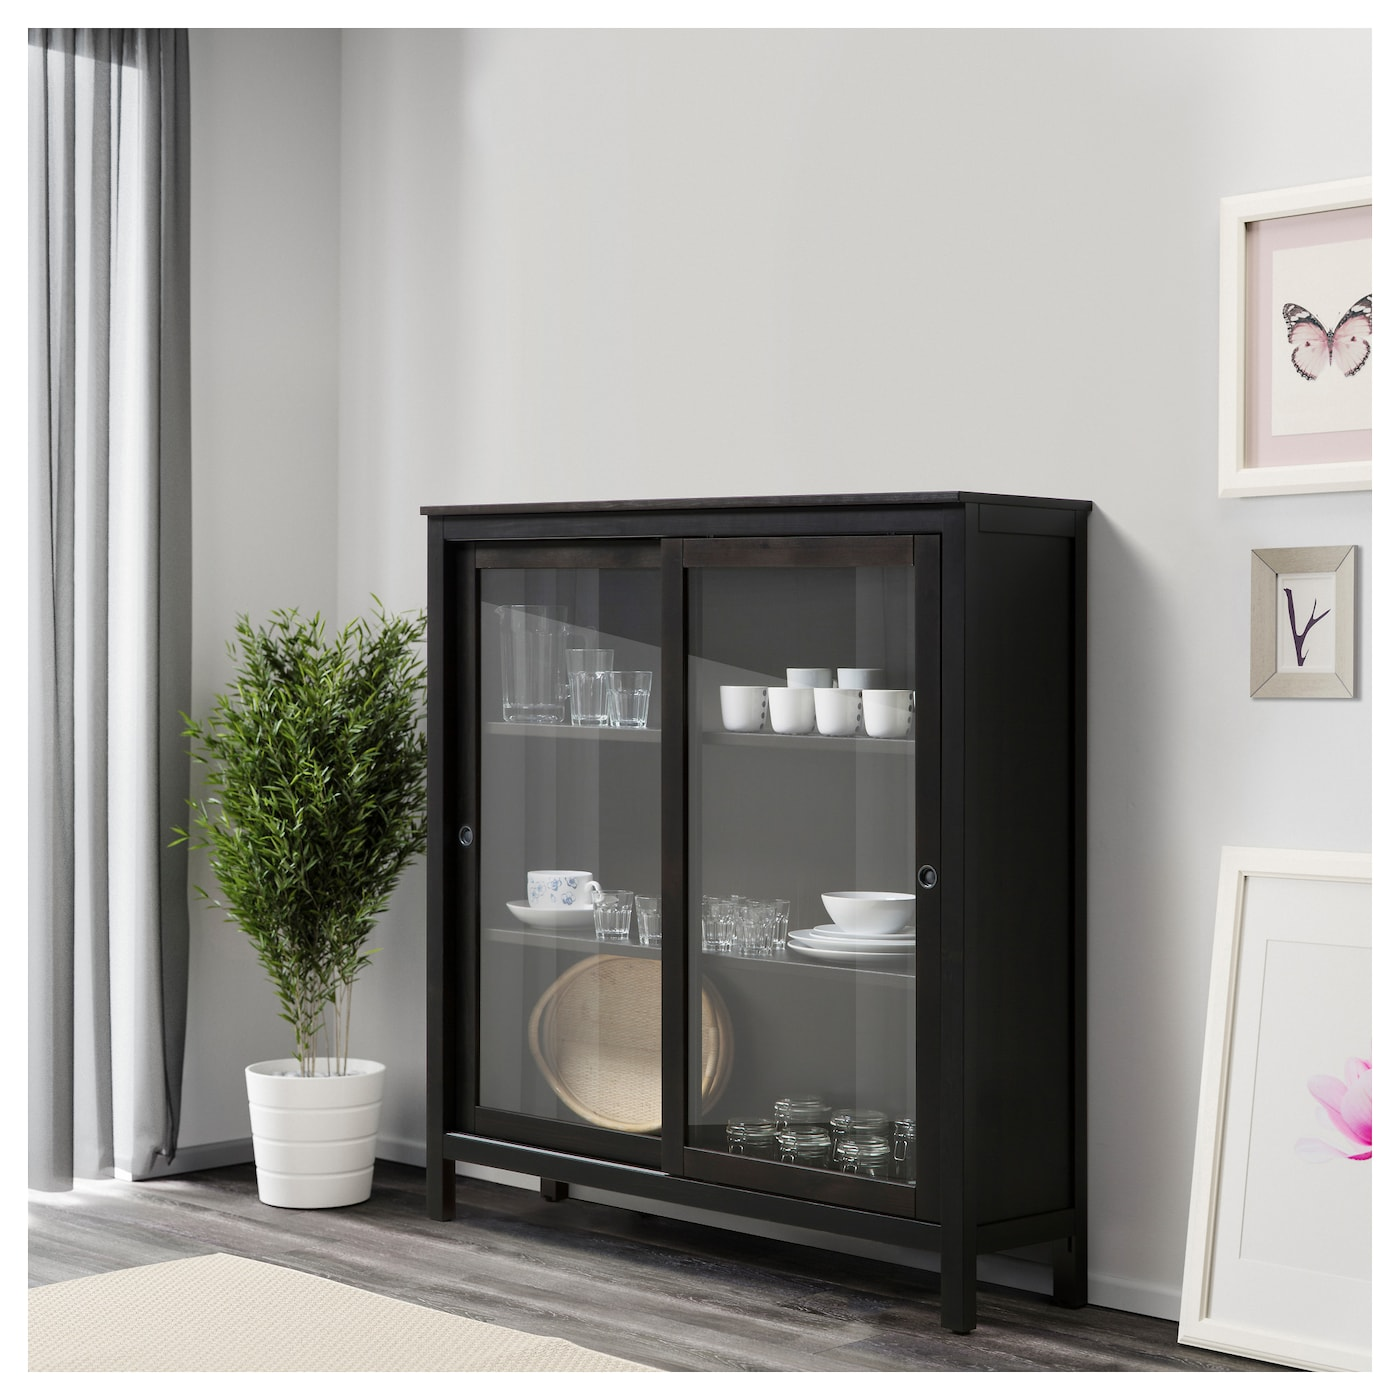 Lovely IKEA HEMNES Glass Door Cabinet Sliding Doors Do Not Take Up Any Space When  Opened